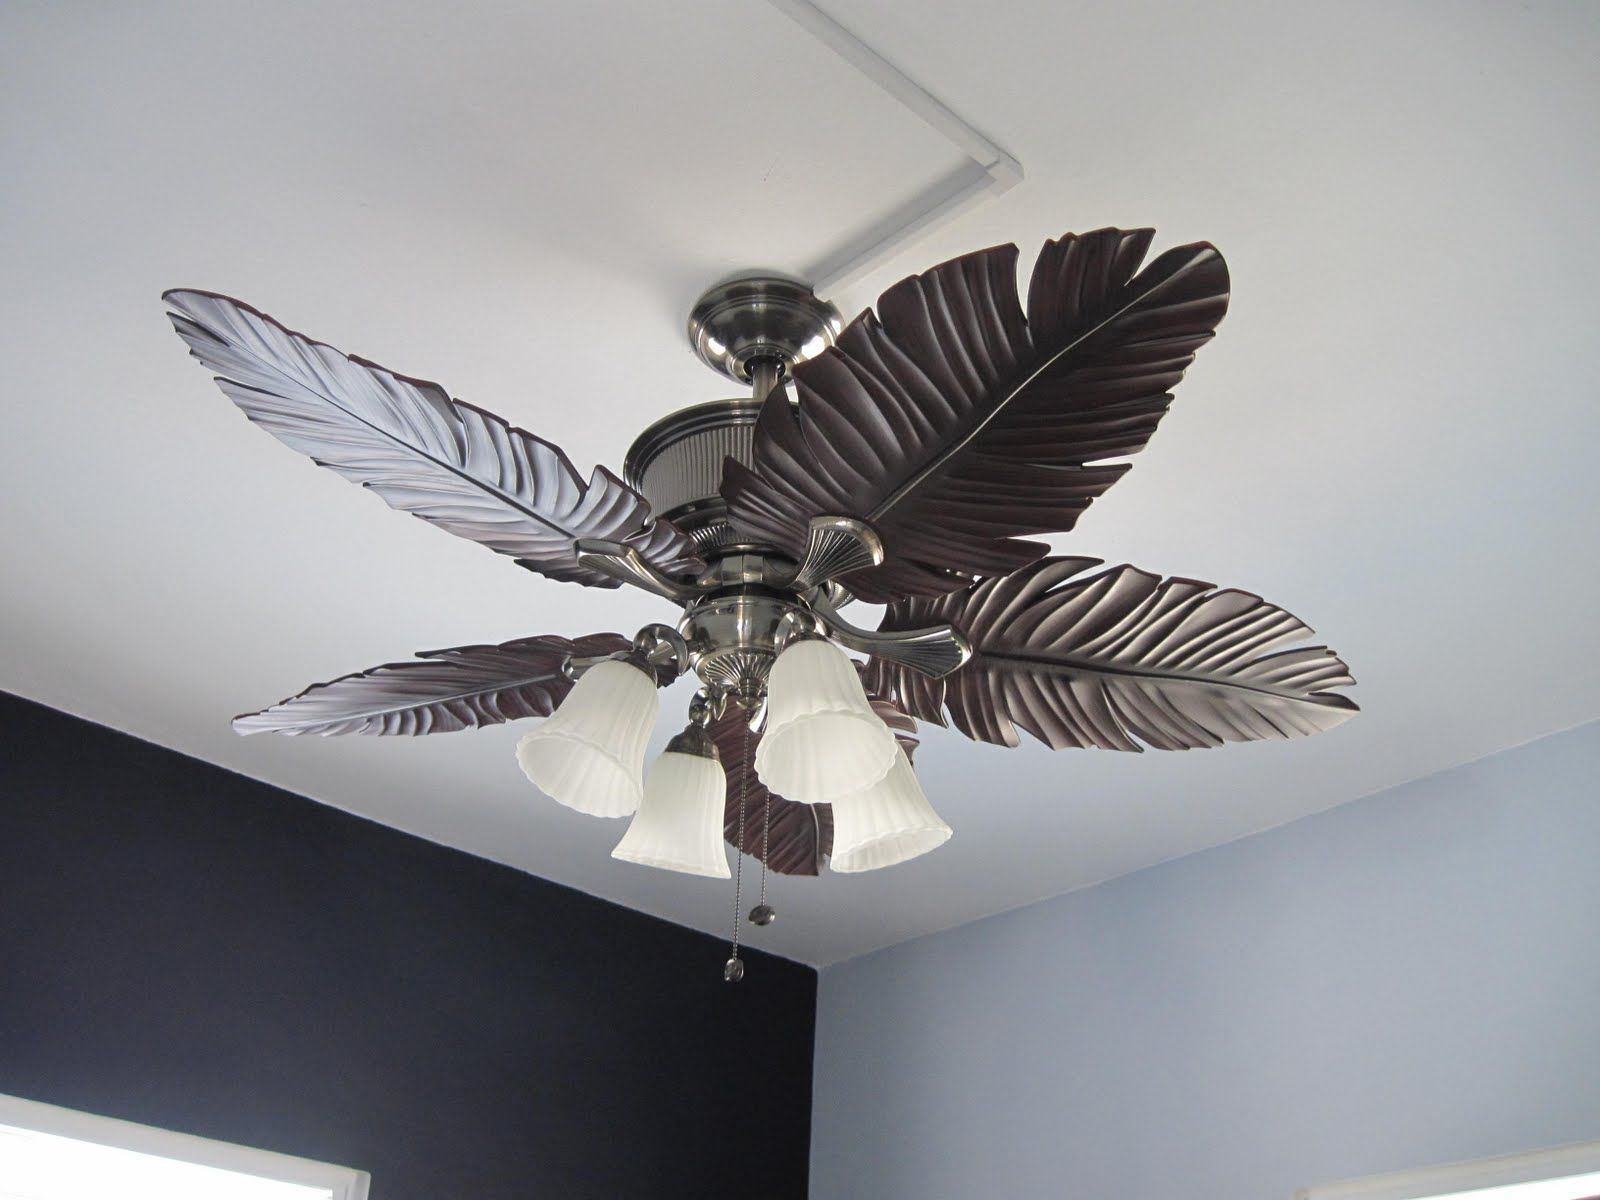 17 Best images about Ceiling fans also vintage lighting that I ...:17 Best images about Ceiling fans also vintage lighting that I love. on  Pinterest | Wall mount, Low ceilings and Tropical ceiling fans,Lighting